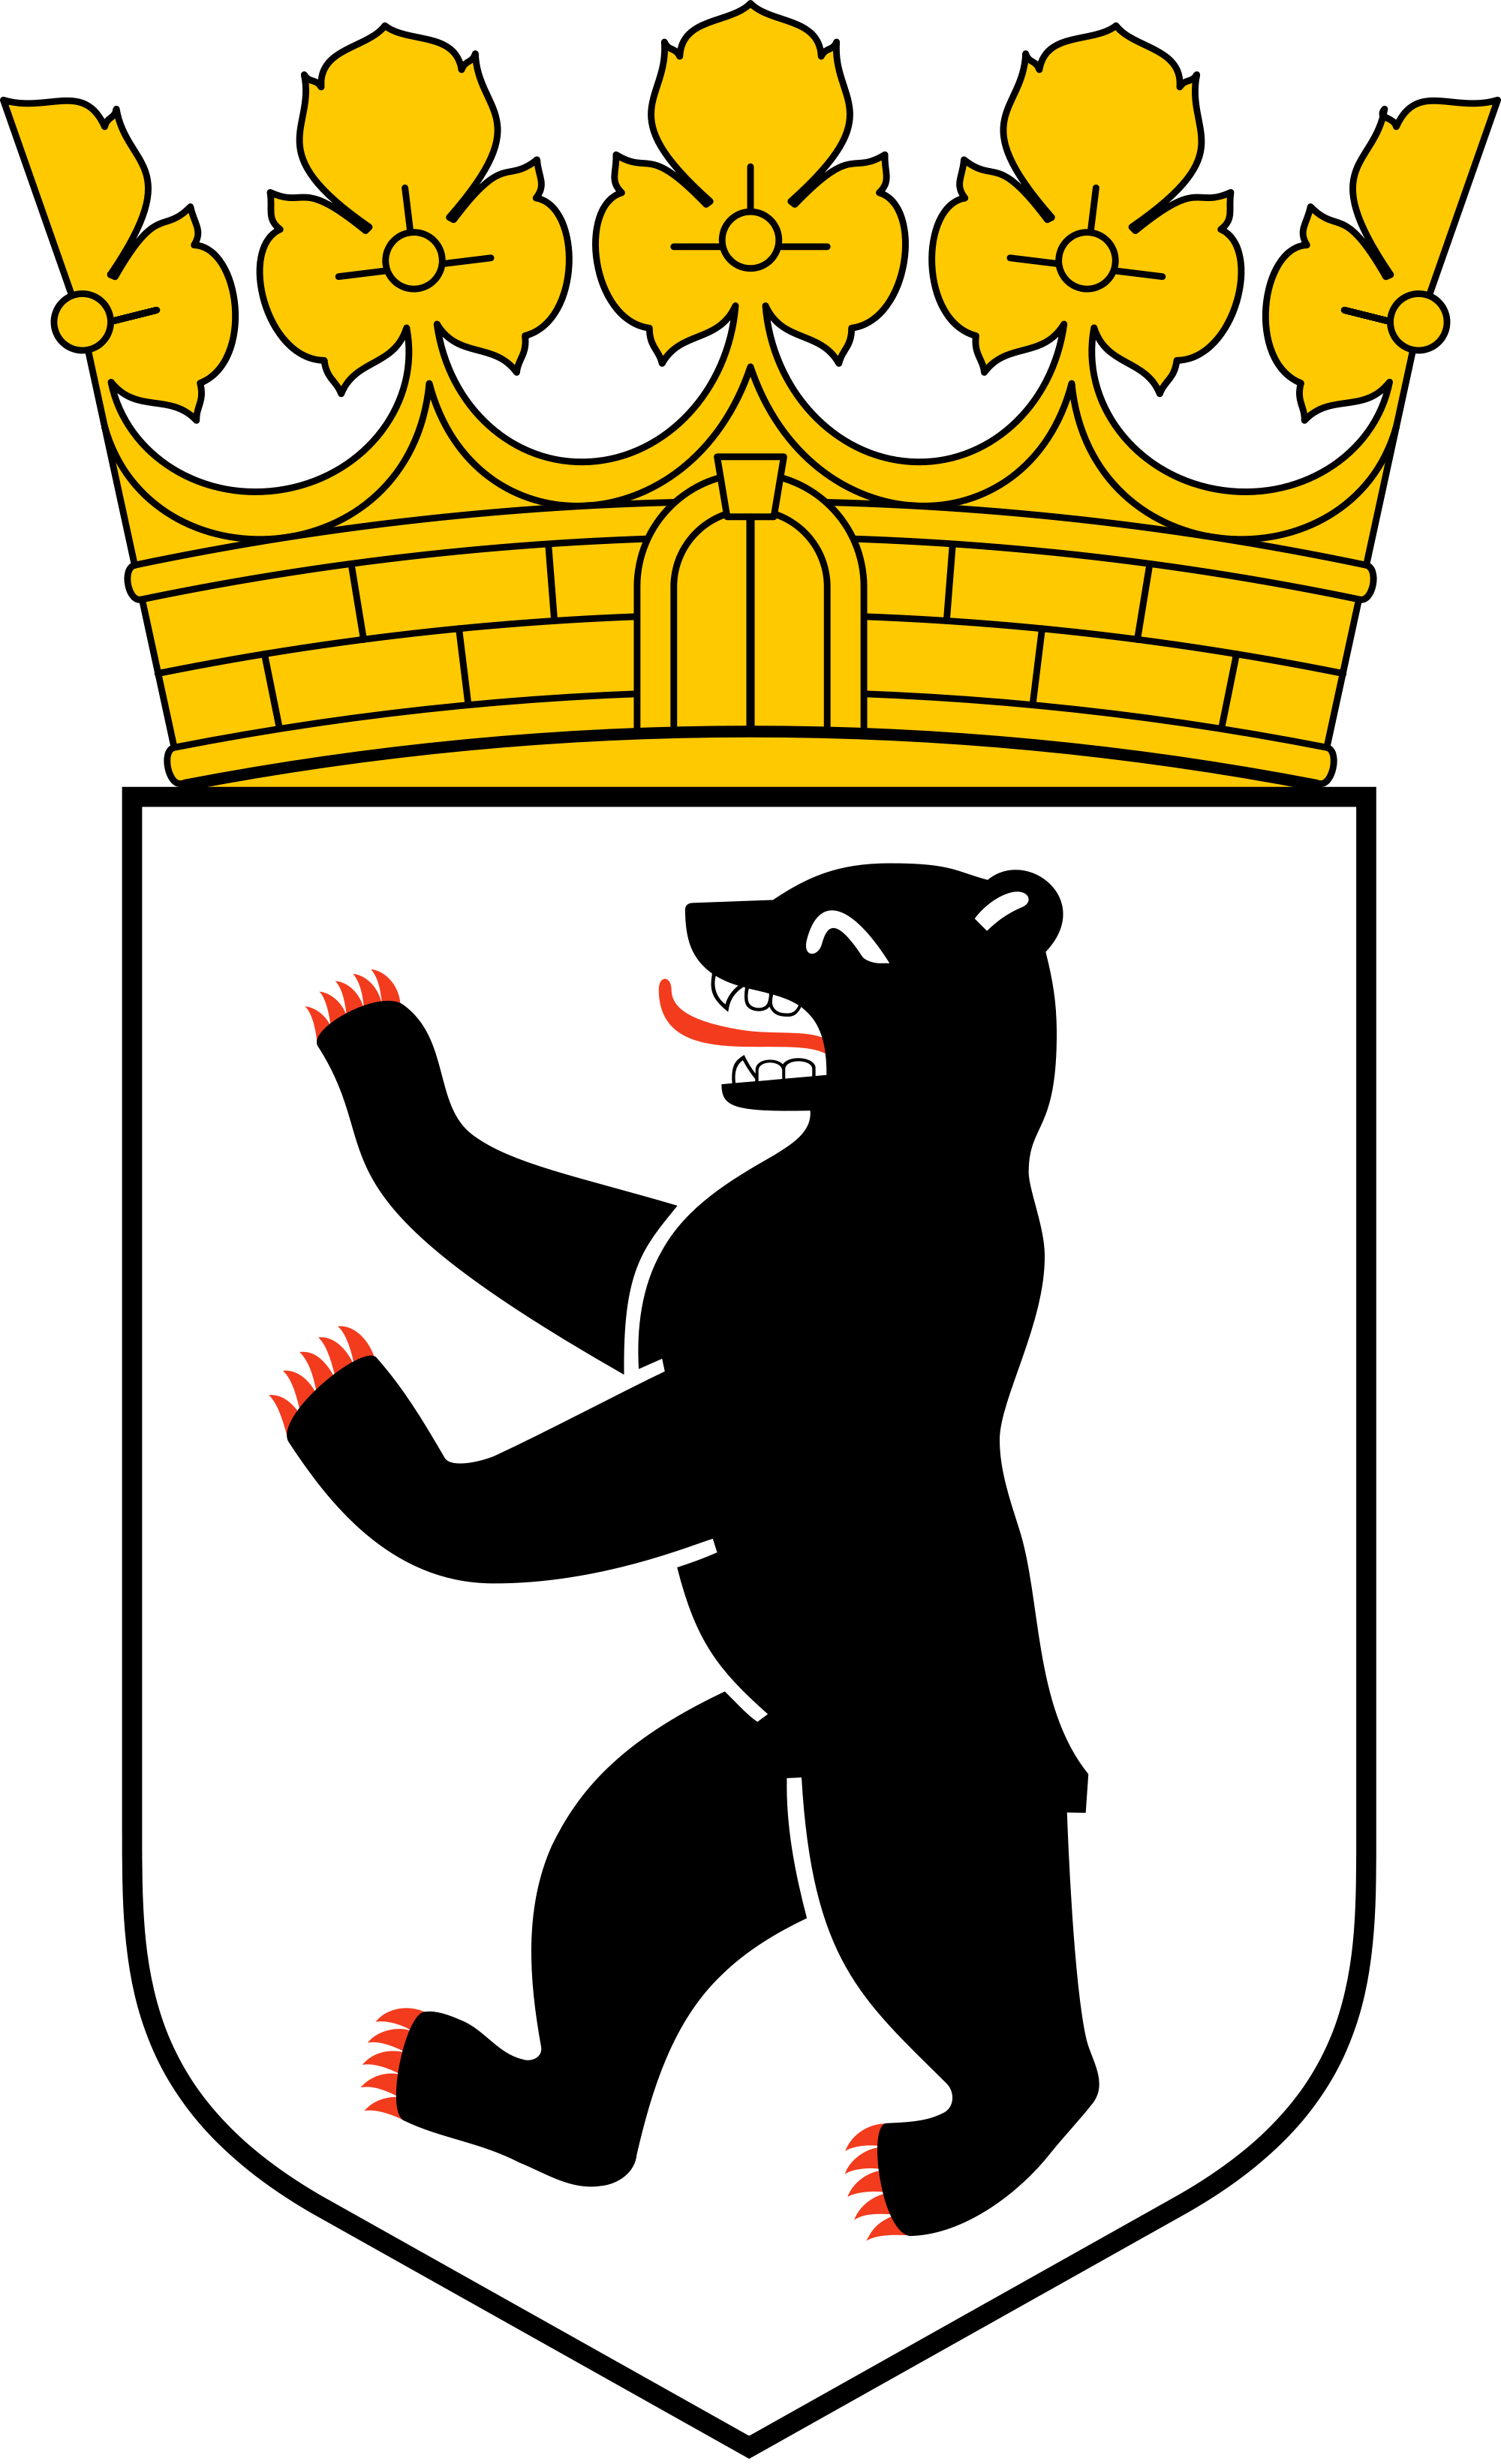 Coat of arms berlin. Germany clipart weimer